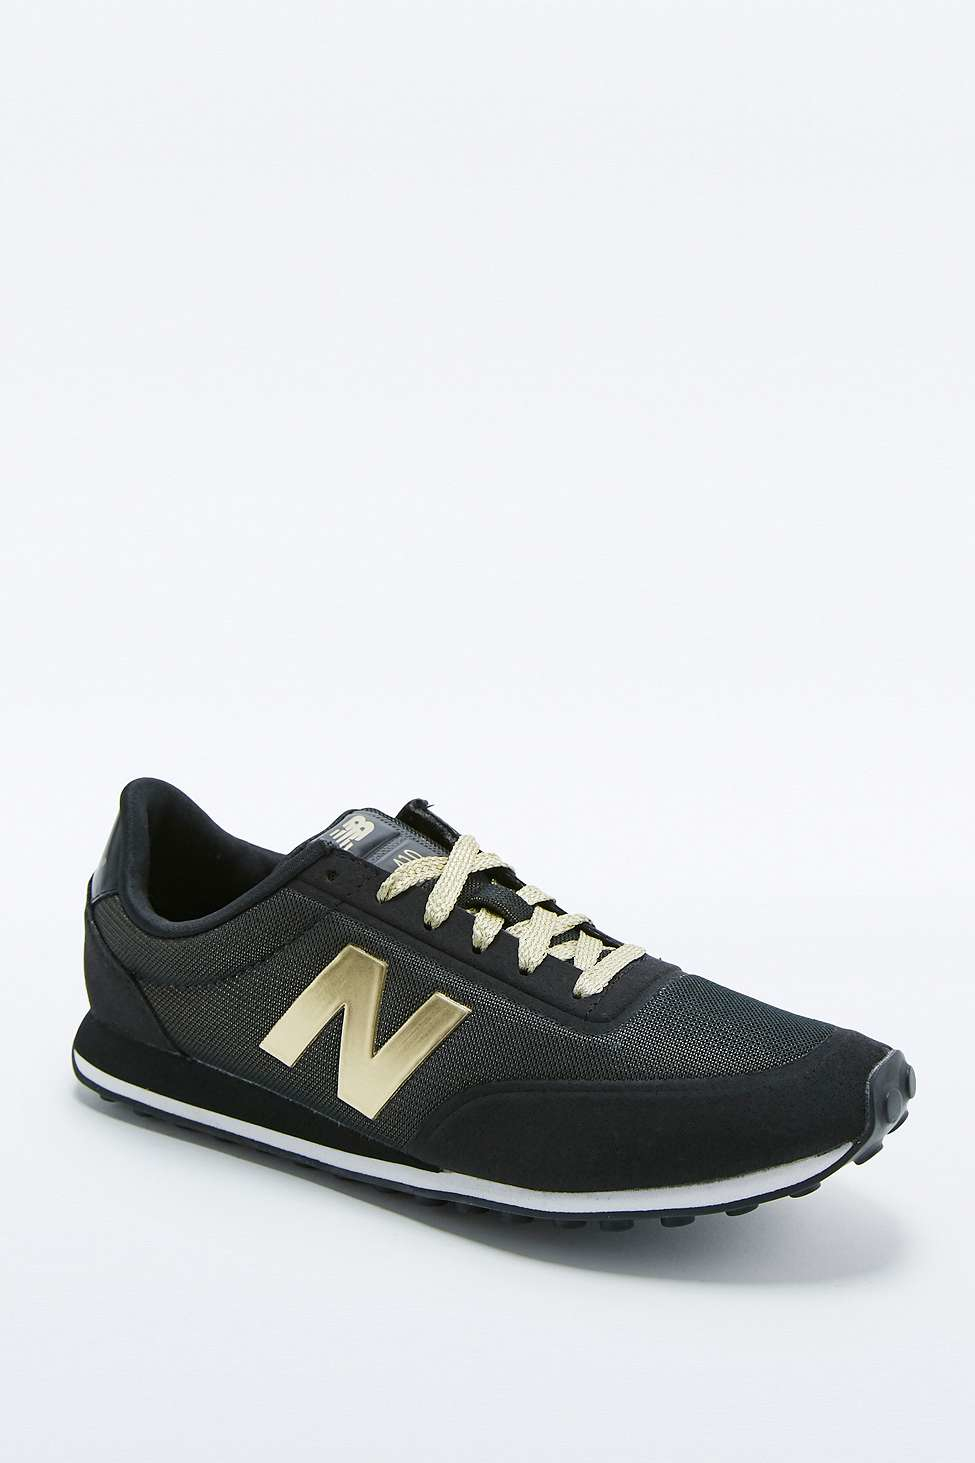 new balance 410 black and gold trainers in black for men. Black Bedroom Furniture Sets. Home Design Ideas